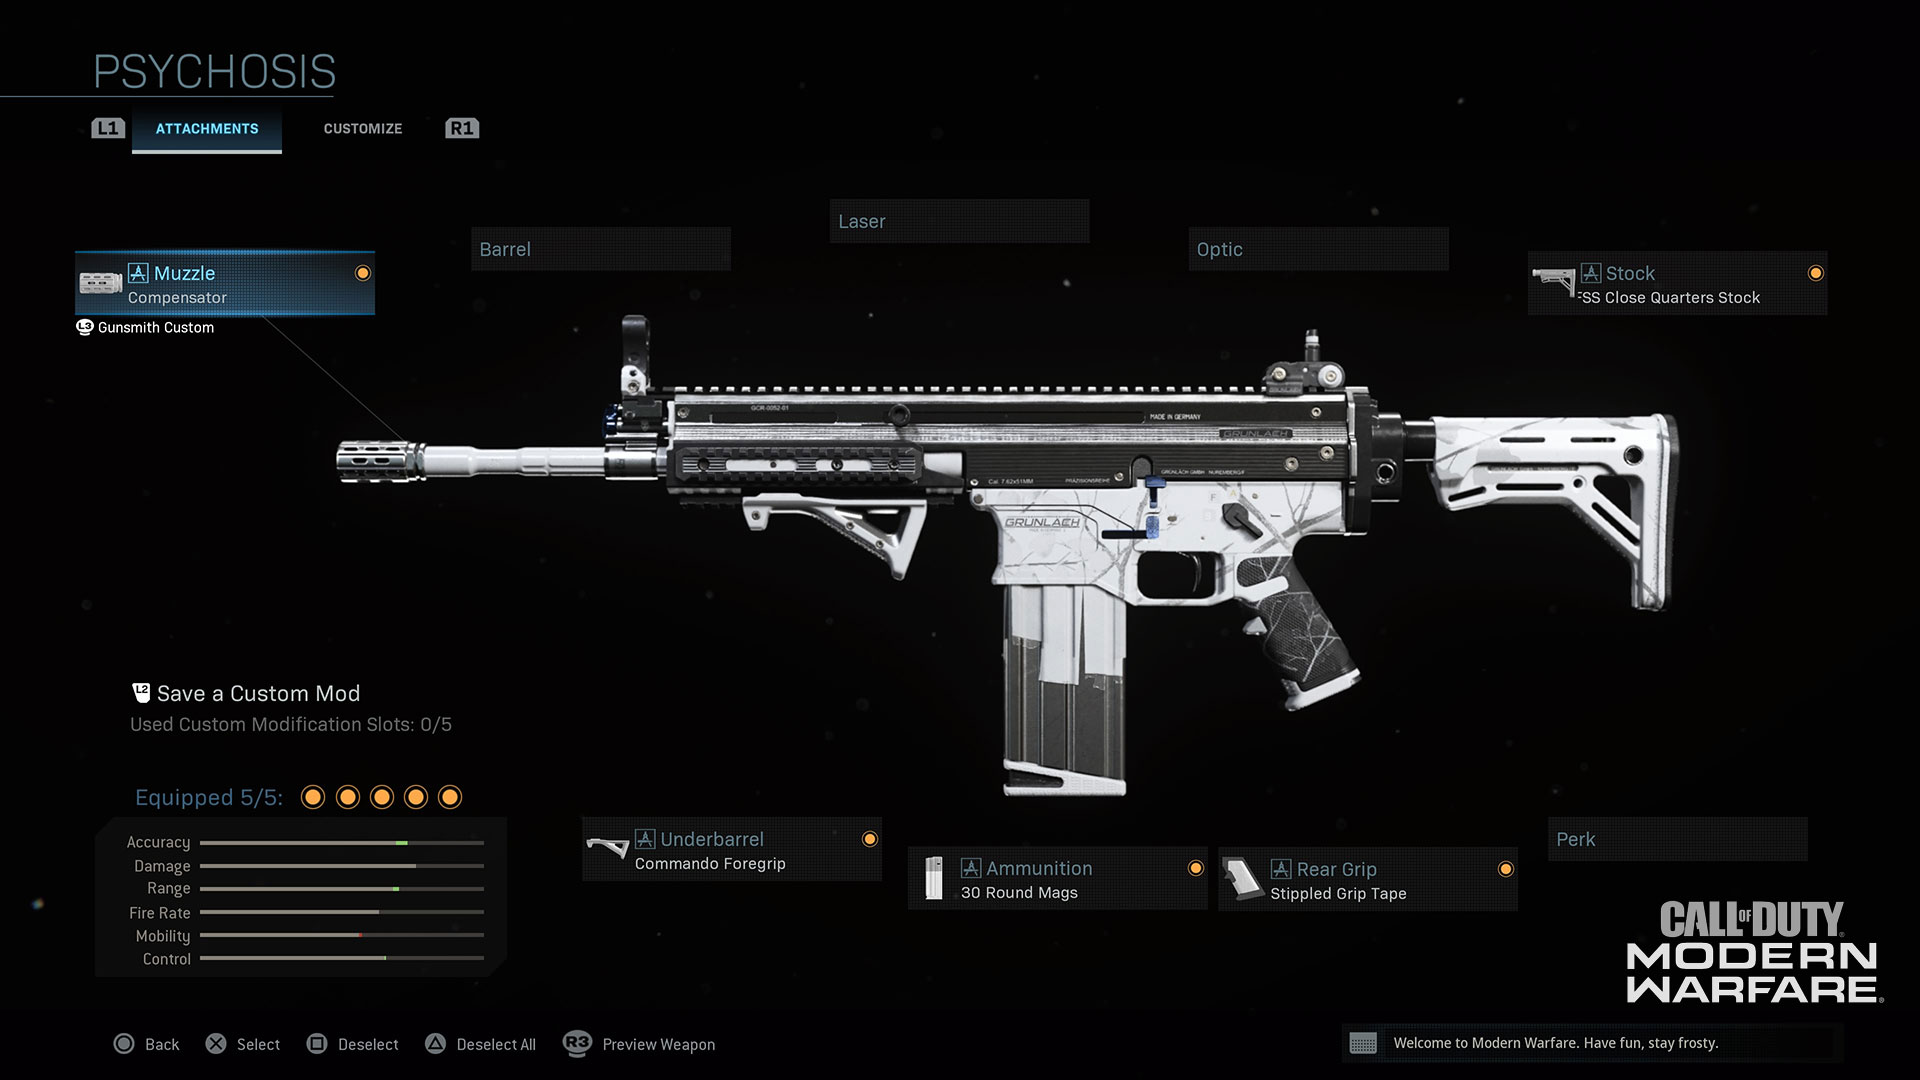 This Week in Call of Duty® - June 15 - Image 7